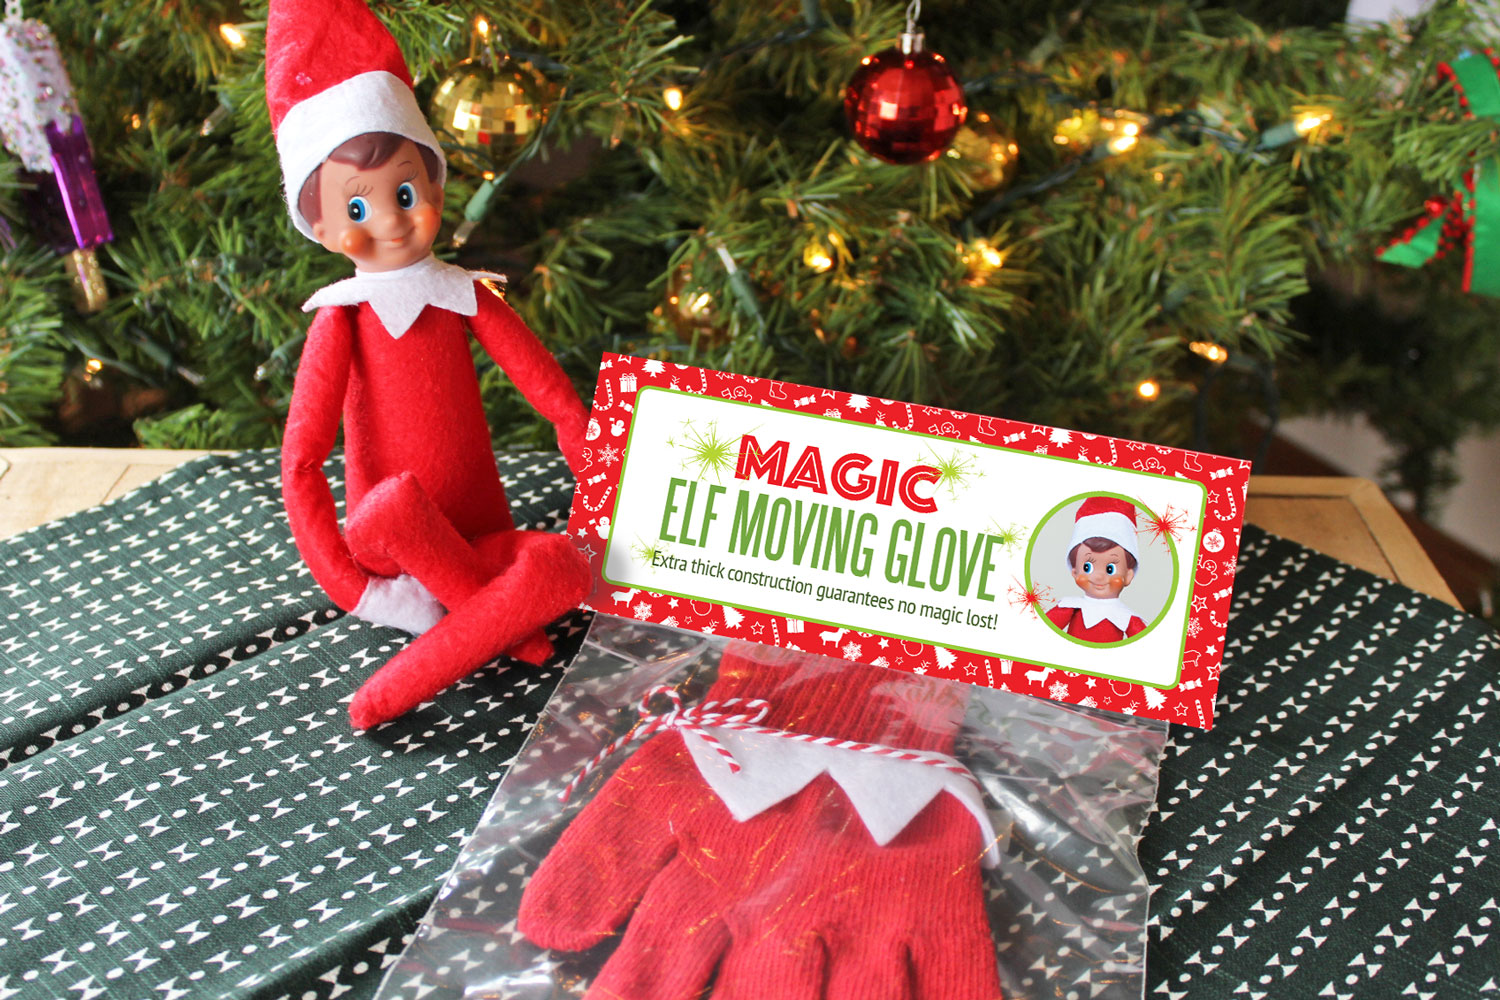 Move your Elf on the Shelf without him losing any magic!